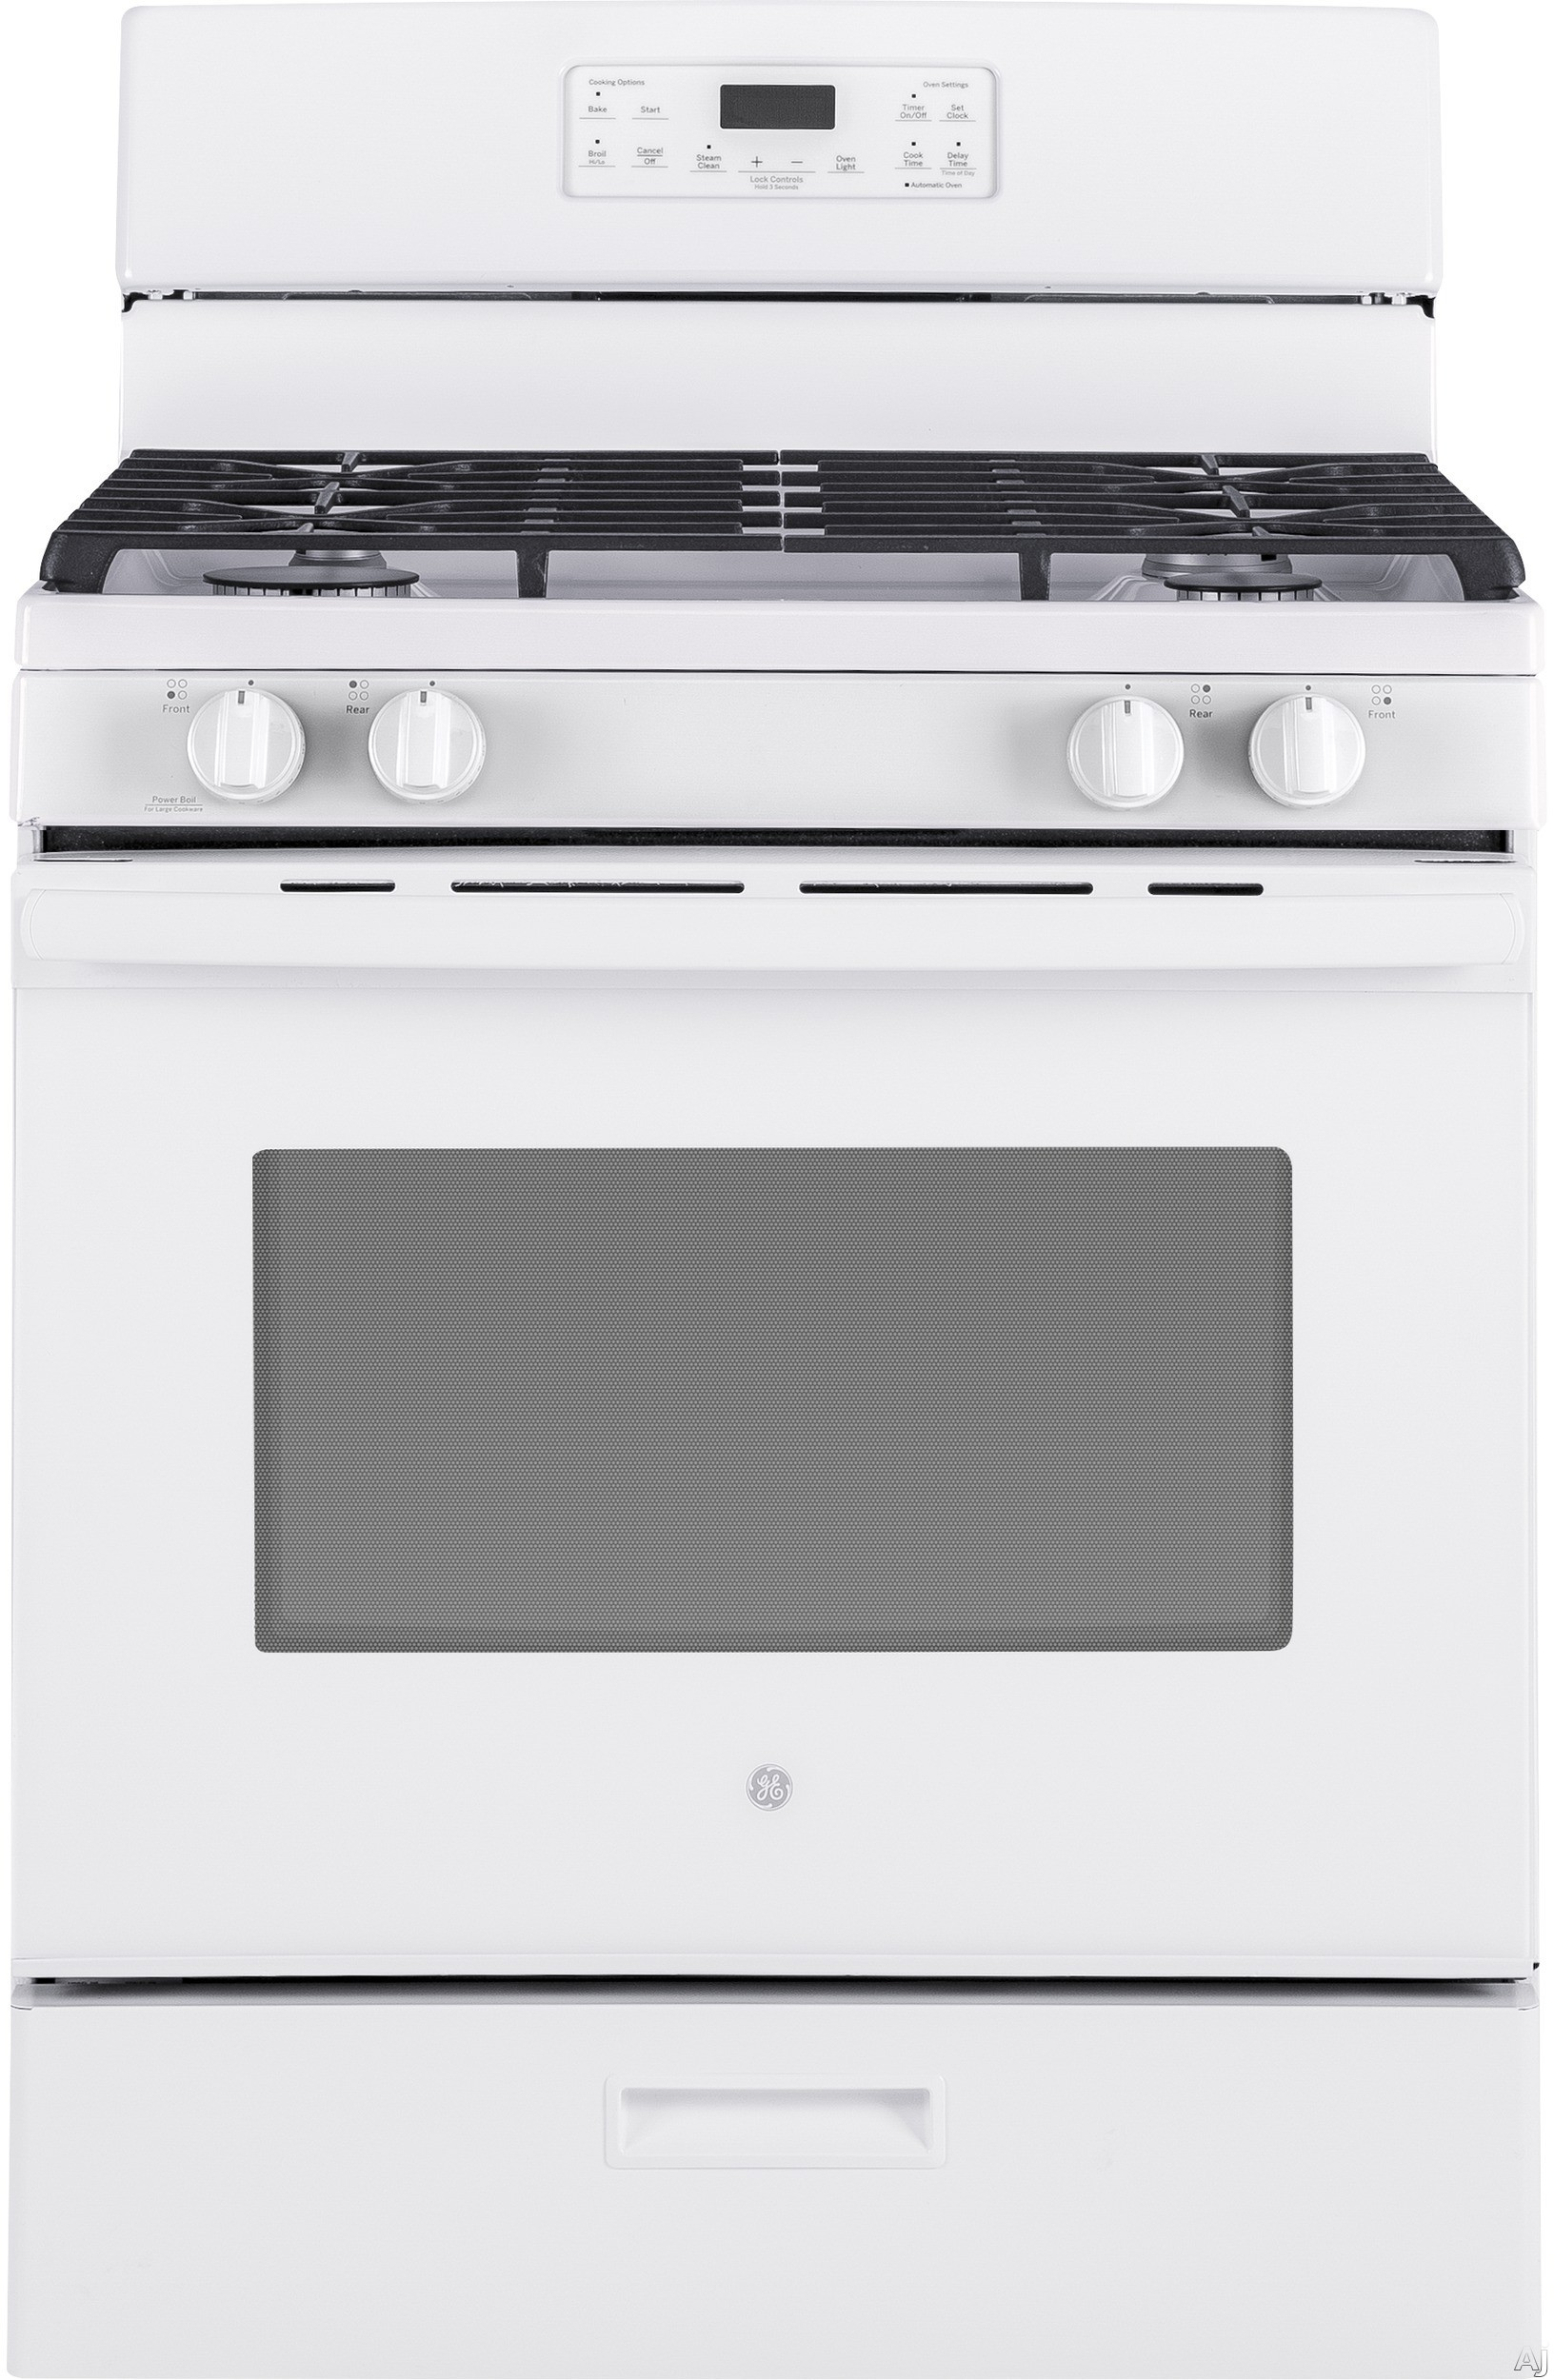 GE JGBS62DEKWW 30 Inch Freestanding Gas Range with Power Boil Burner, Simmer Burner, Steam Clean, Broiler Drawer, Continuous Grates, 4 Sealed Burners and 5 cu. ft. Capacity: White